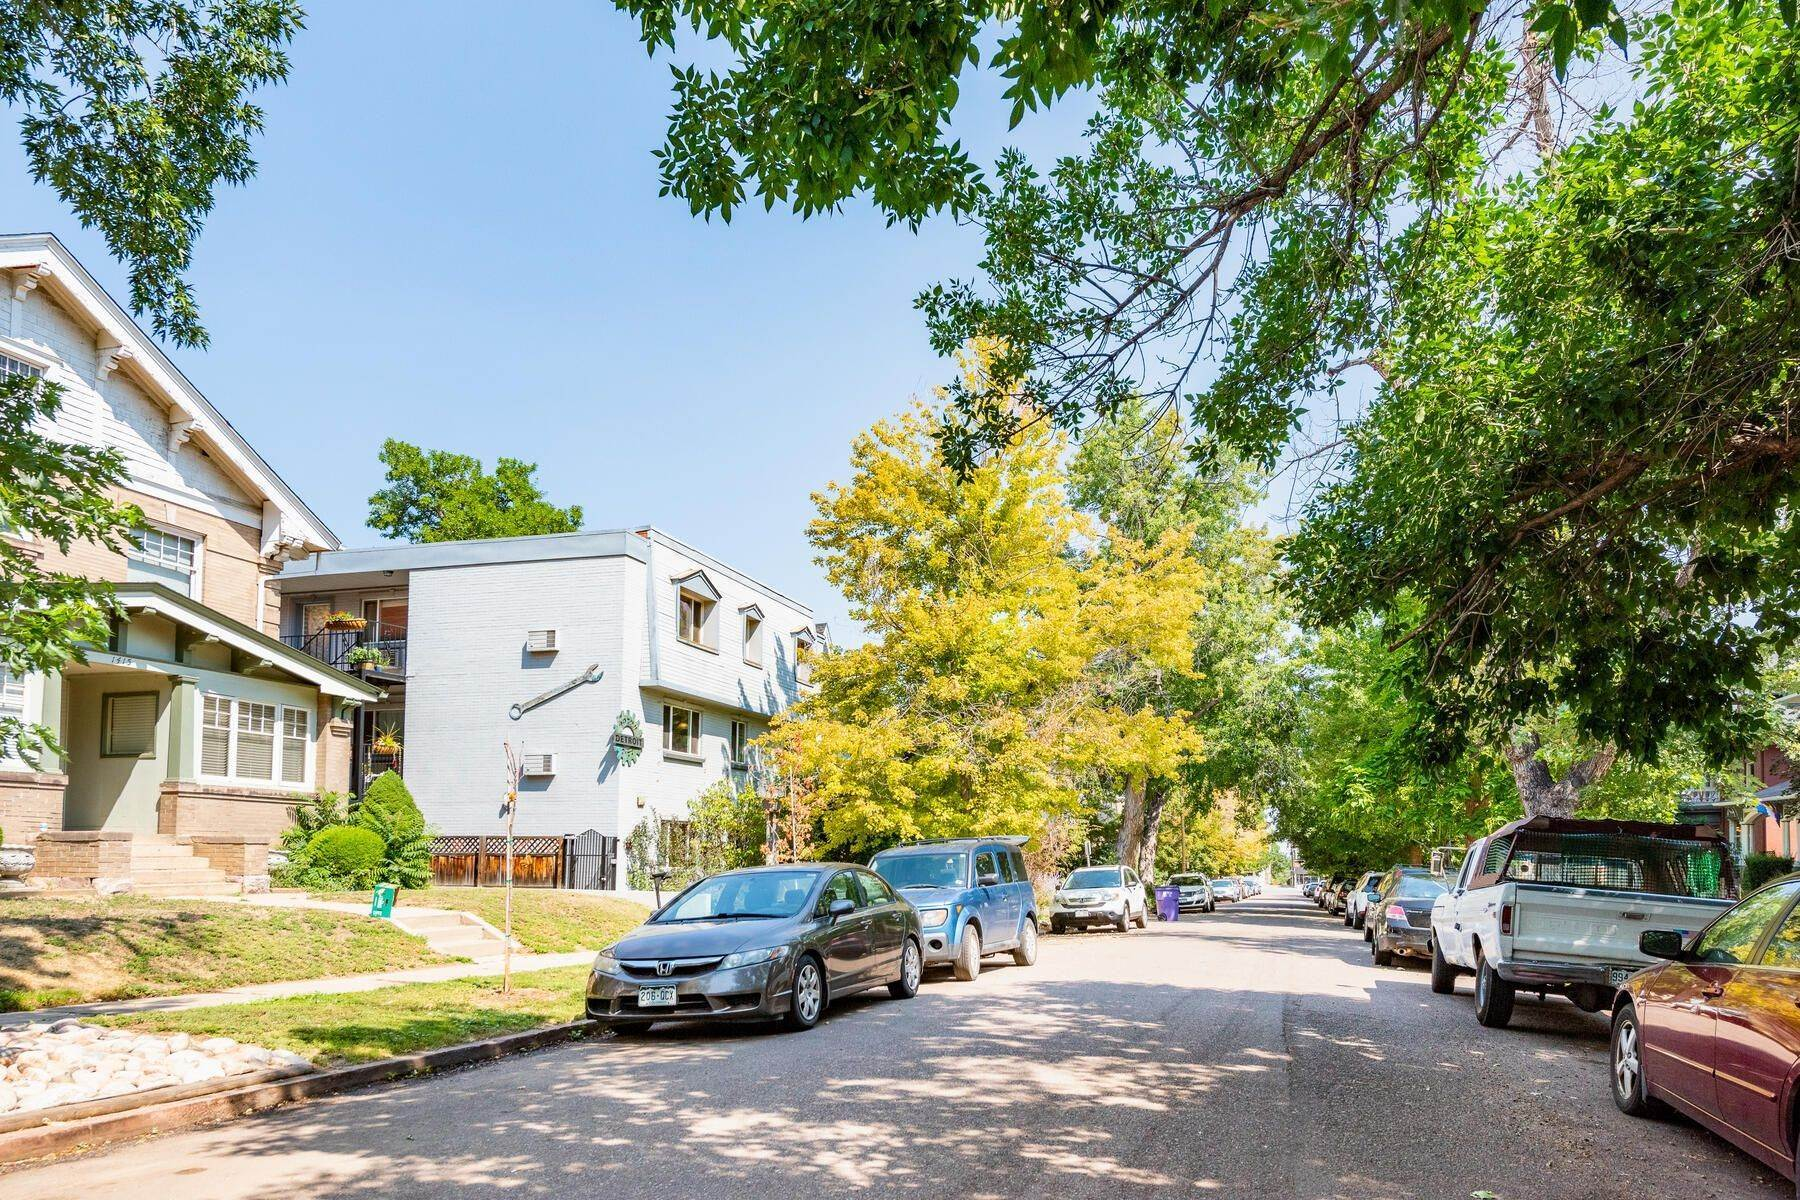 Condominiums for Sale at Wonderful Condo with Reserved Parking in the Heart of Historic Congress Park! 1419 Detroit Street, Unit# 20 Denver, Colorado 80206 United States